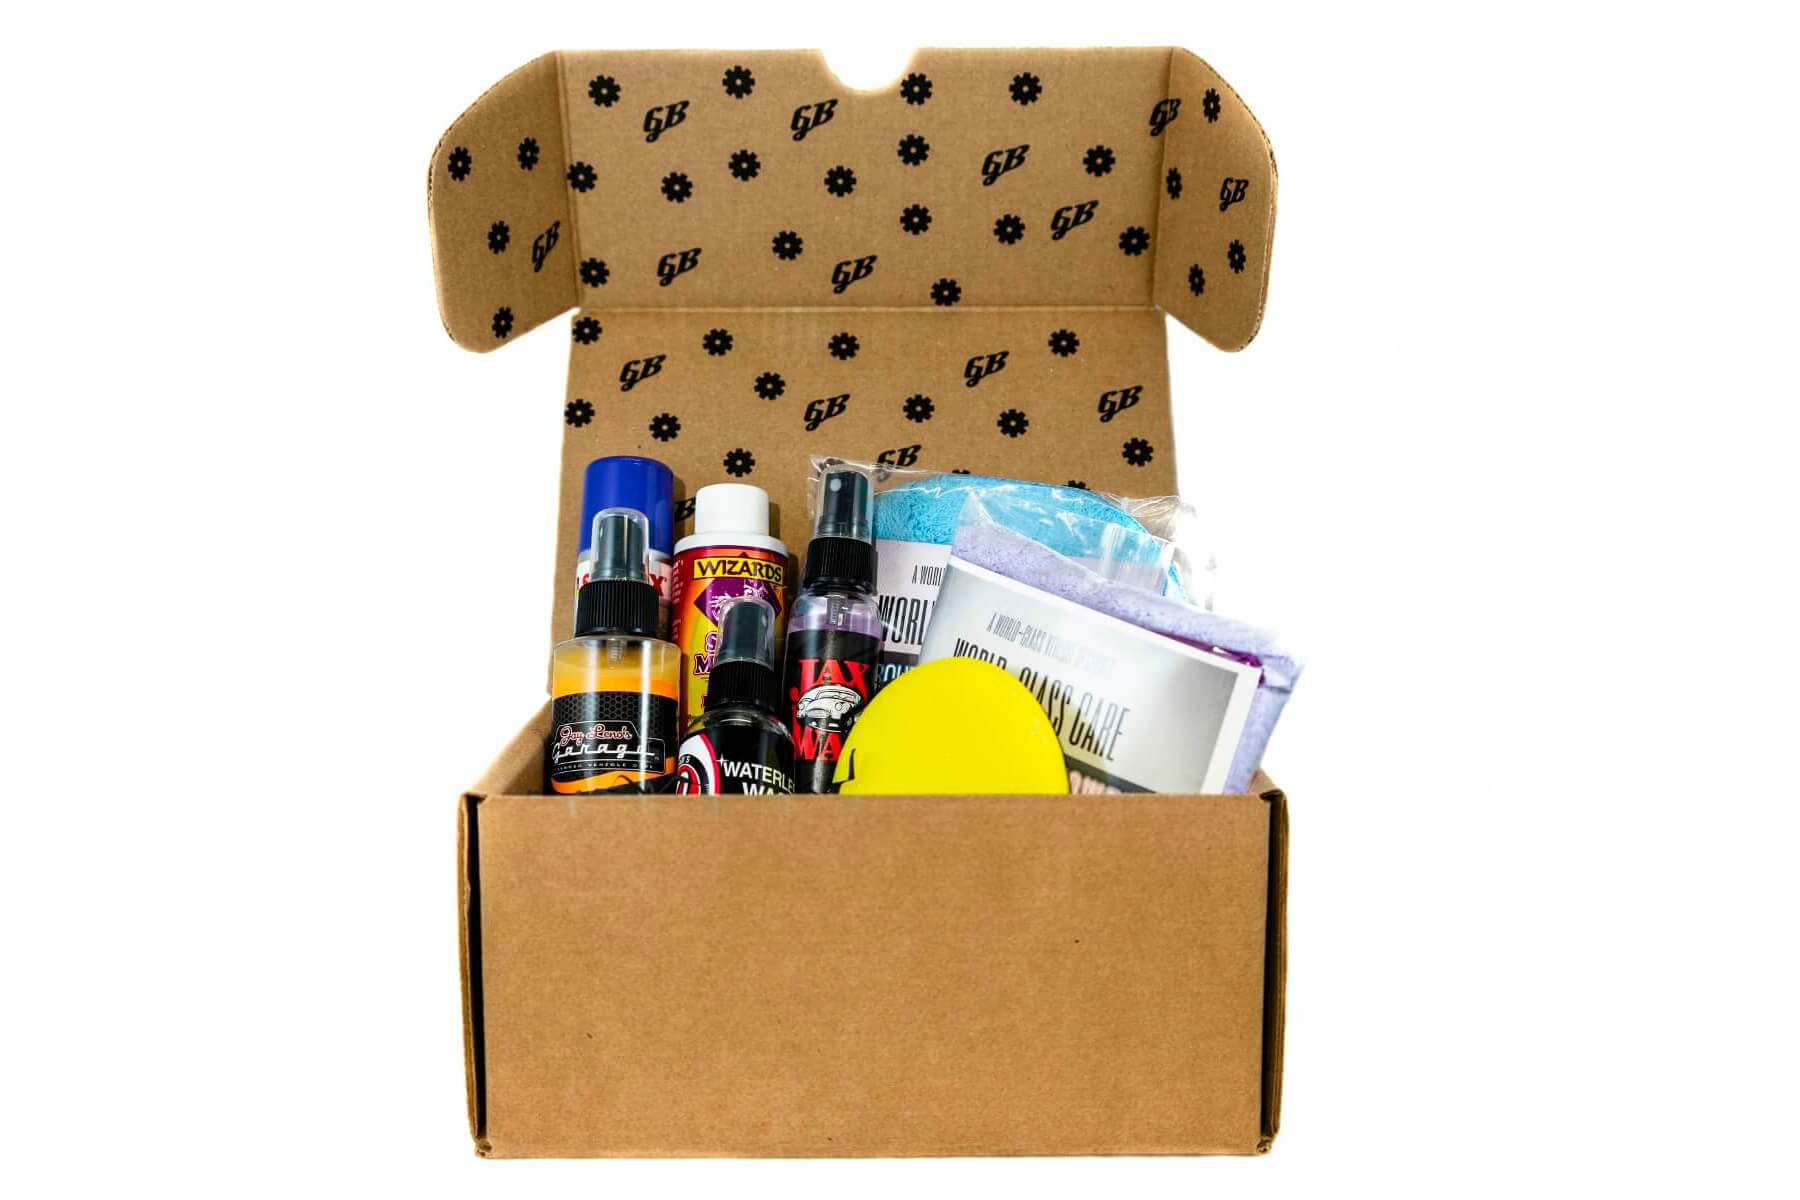 Then, - A curated box of premium detailing products shows up to your door the first week of every month